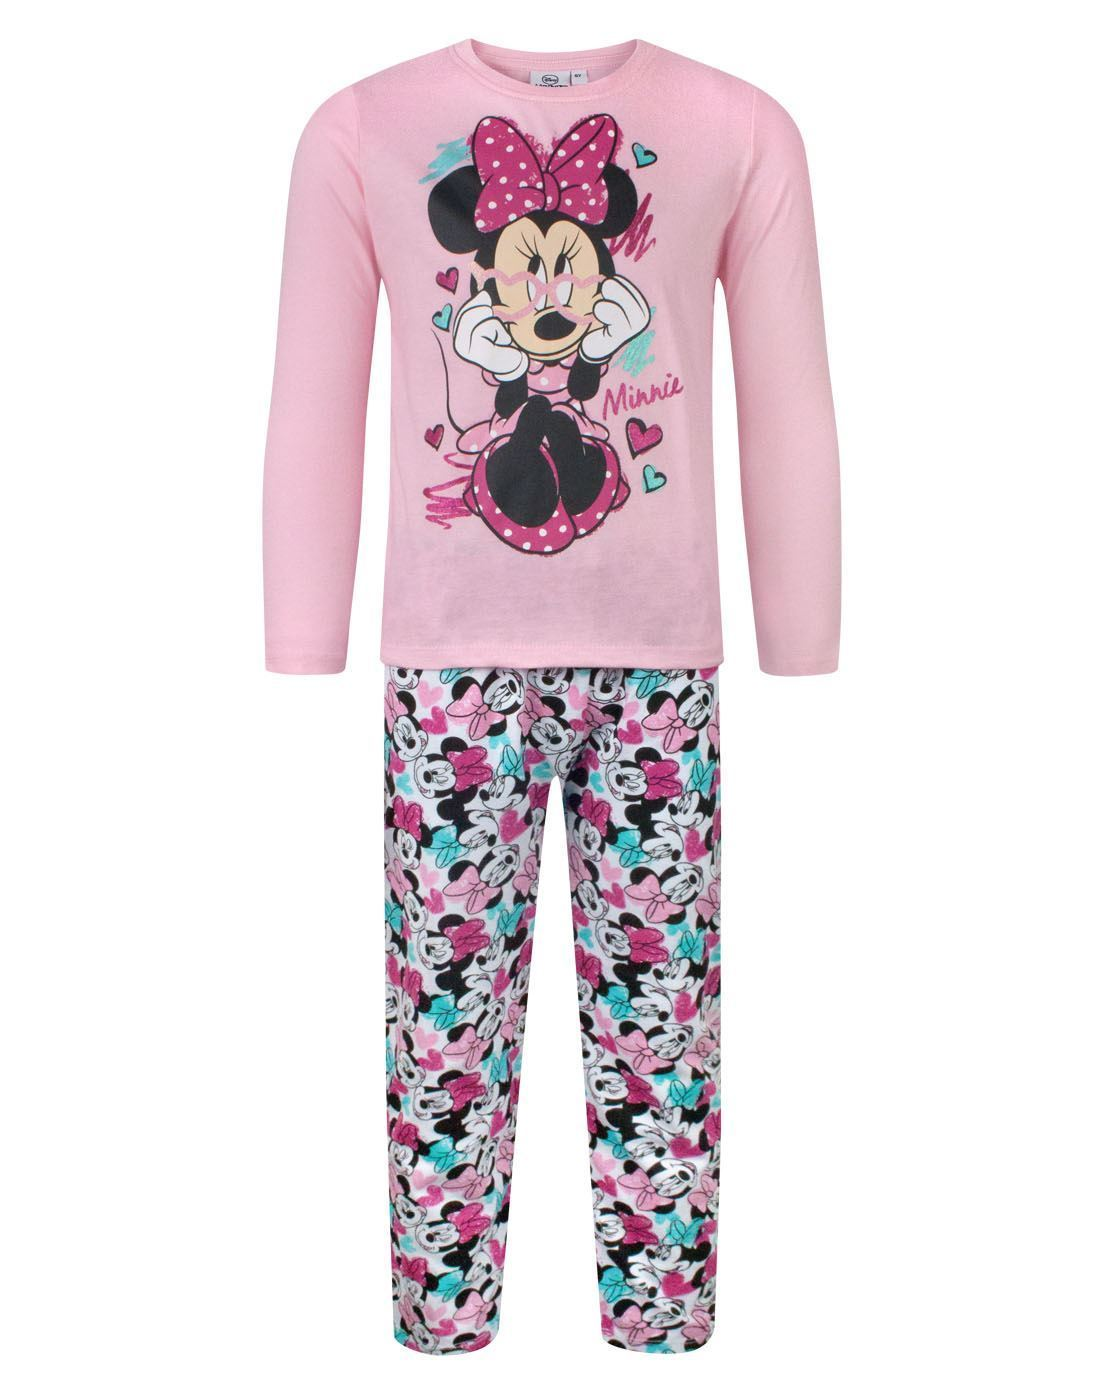 Minnie Mouse Girl's Pyjamas